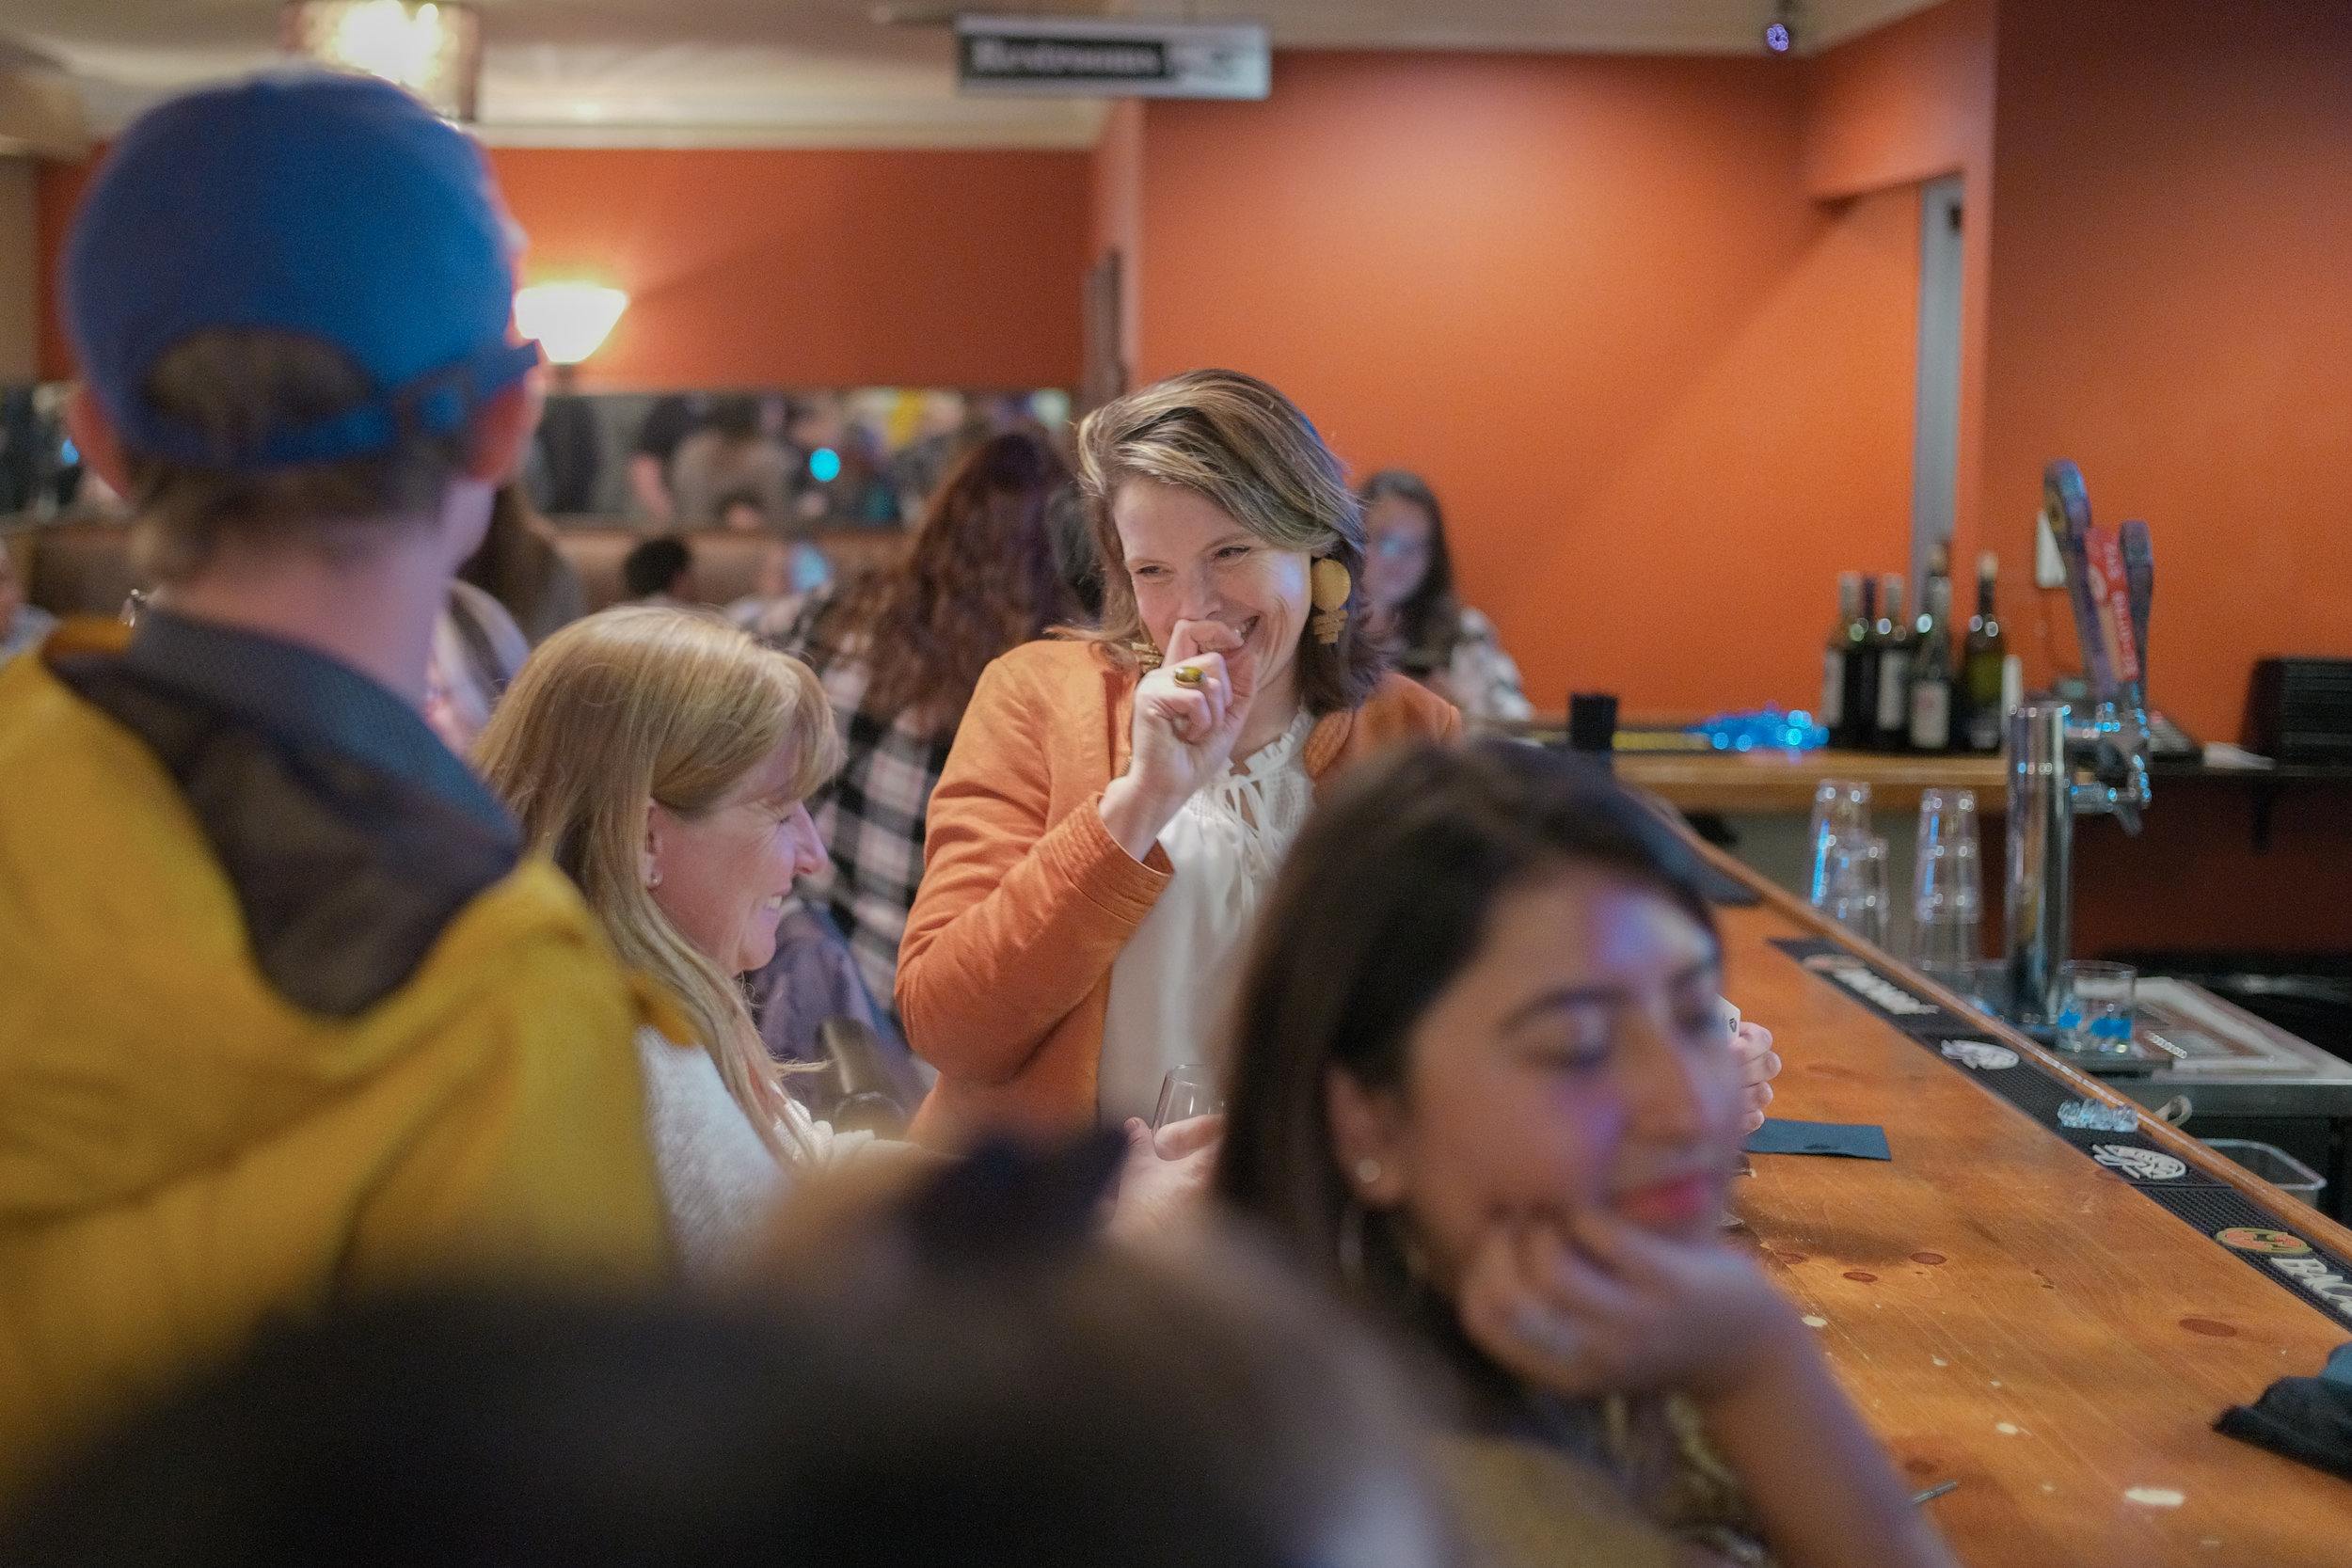 """Columbia resident Leah Christian makes a joke while waiting to order a drink on Tuesday, Nov. 6, 2018 in The Tiger Hotel. """"I'm extremely happy to support candidates who will bring a brighter future for Missouri,"""" she said."""